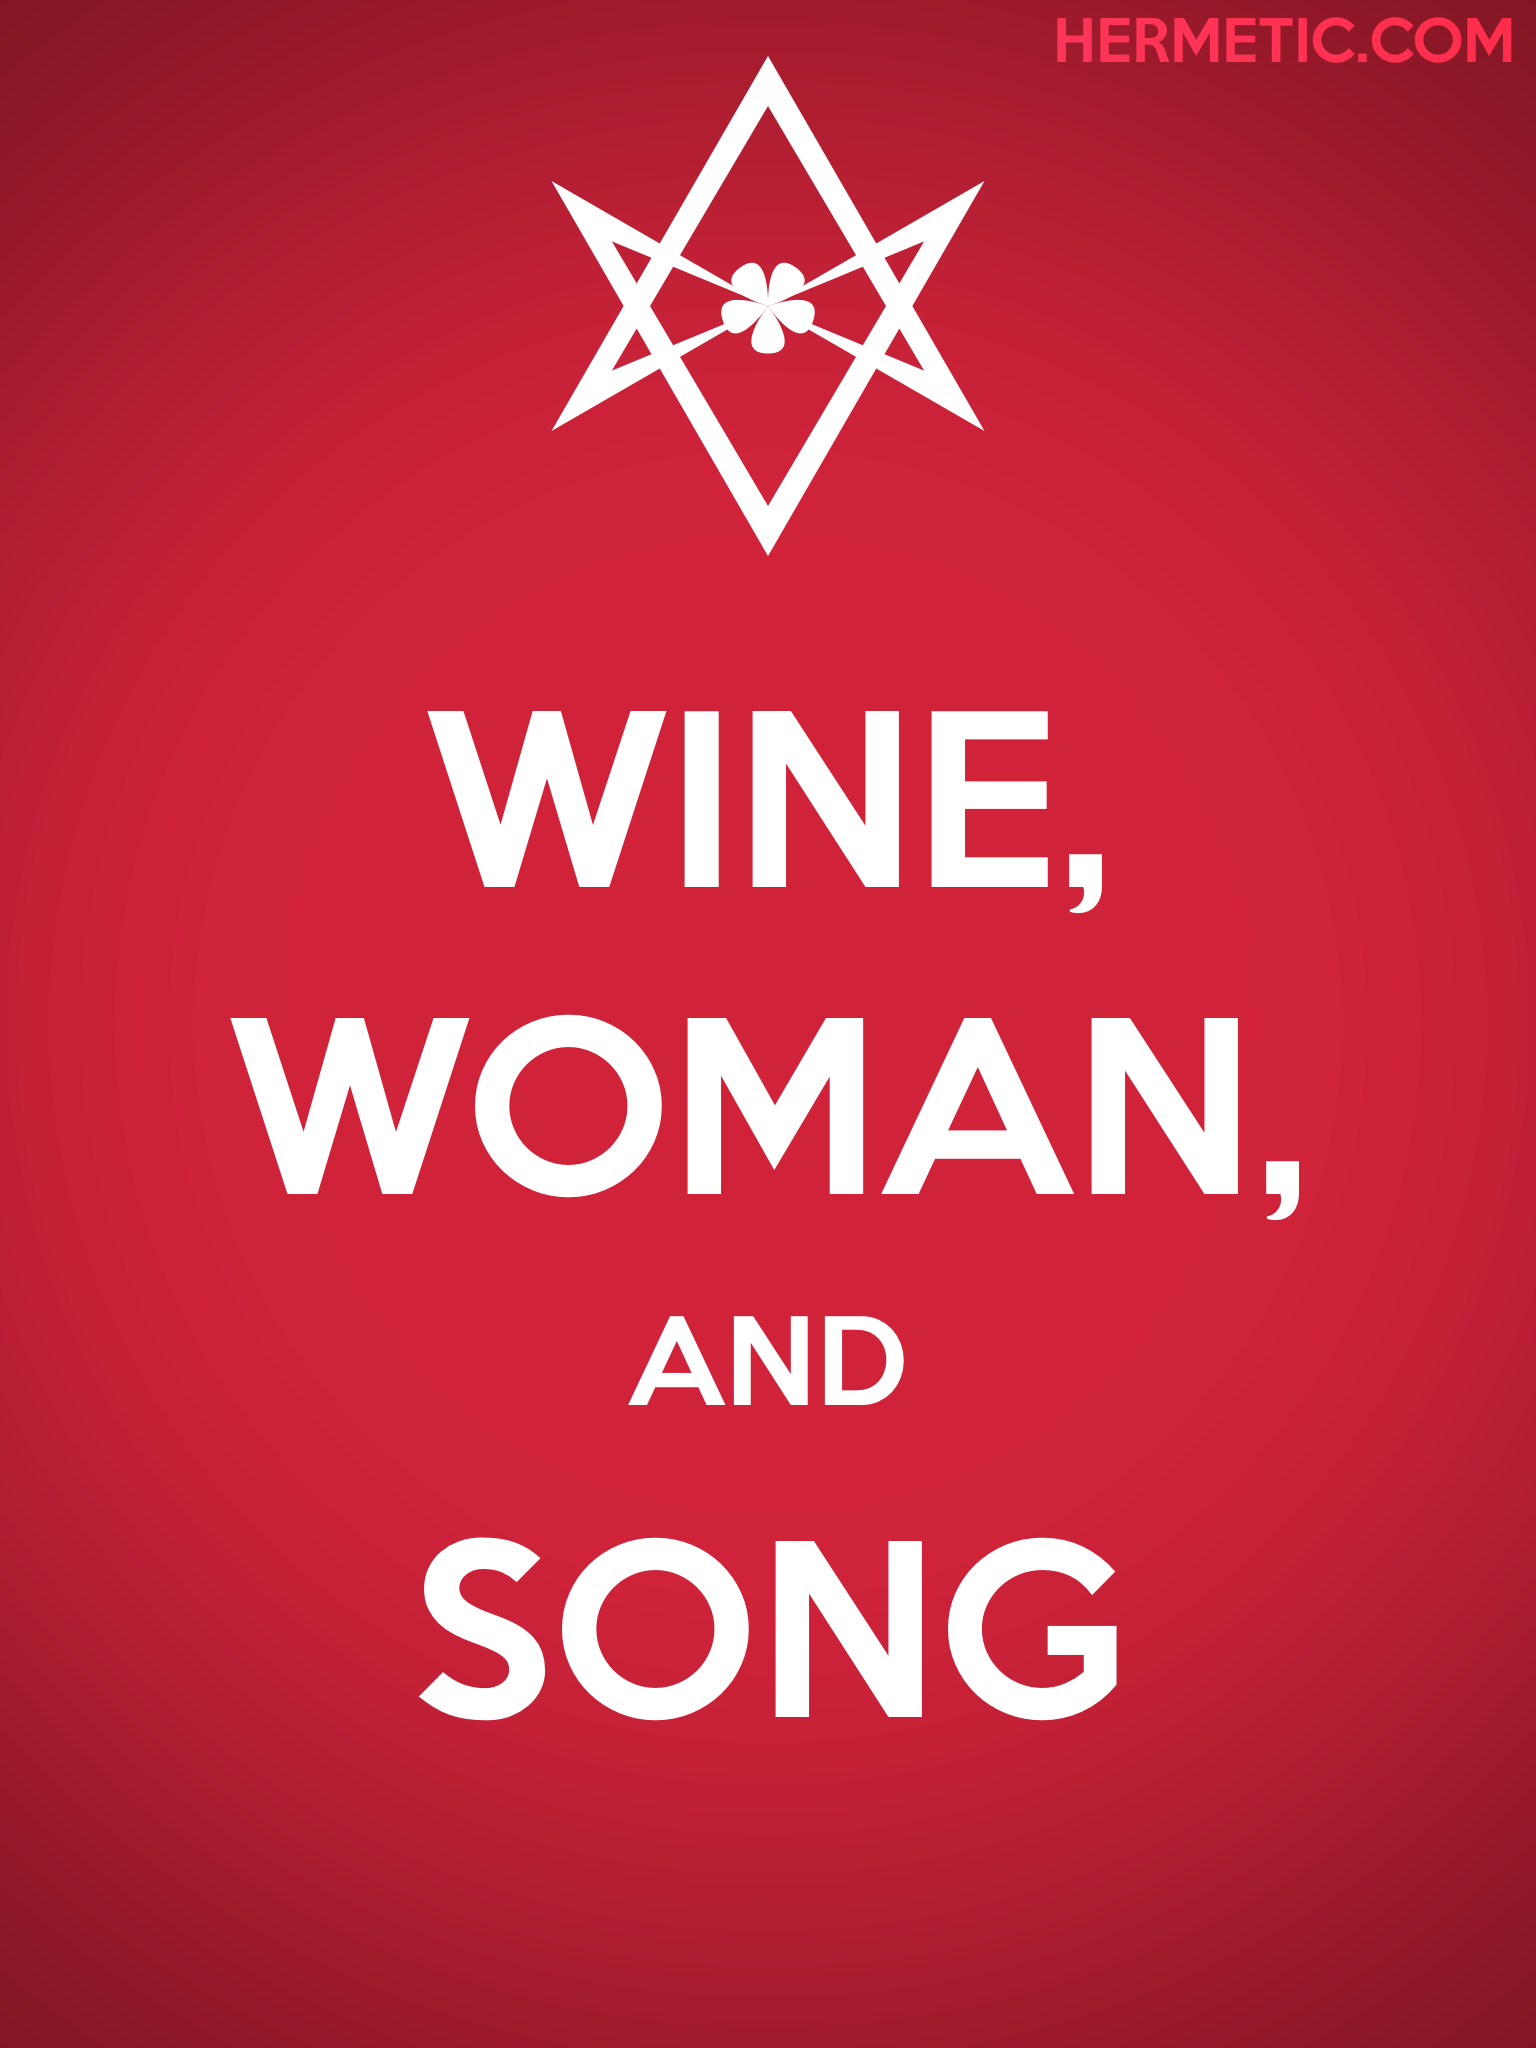 Unicursal WINE WOMAN SONG Poster from Hermetic Library Ministry of Information